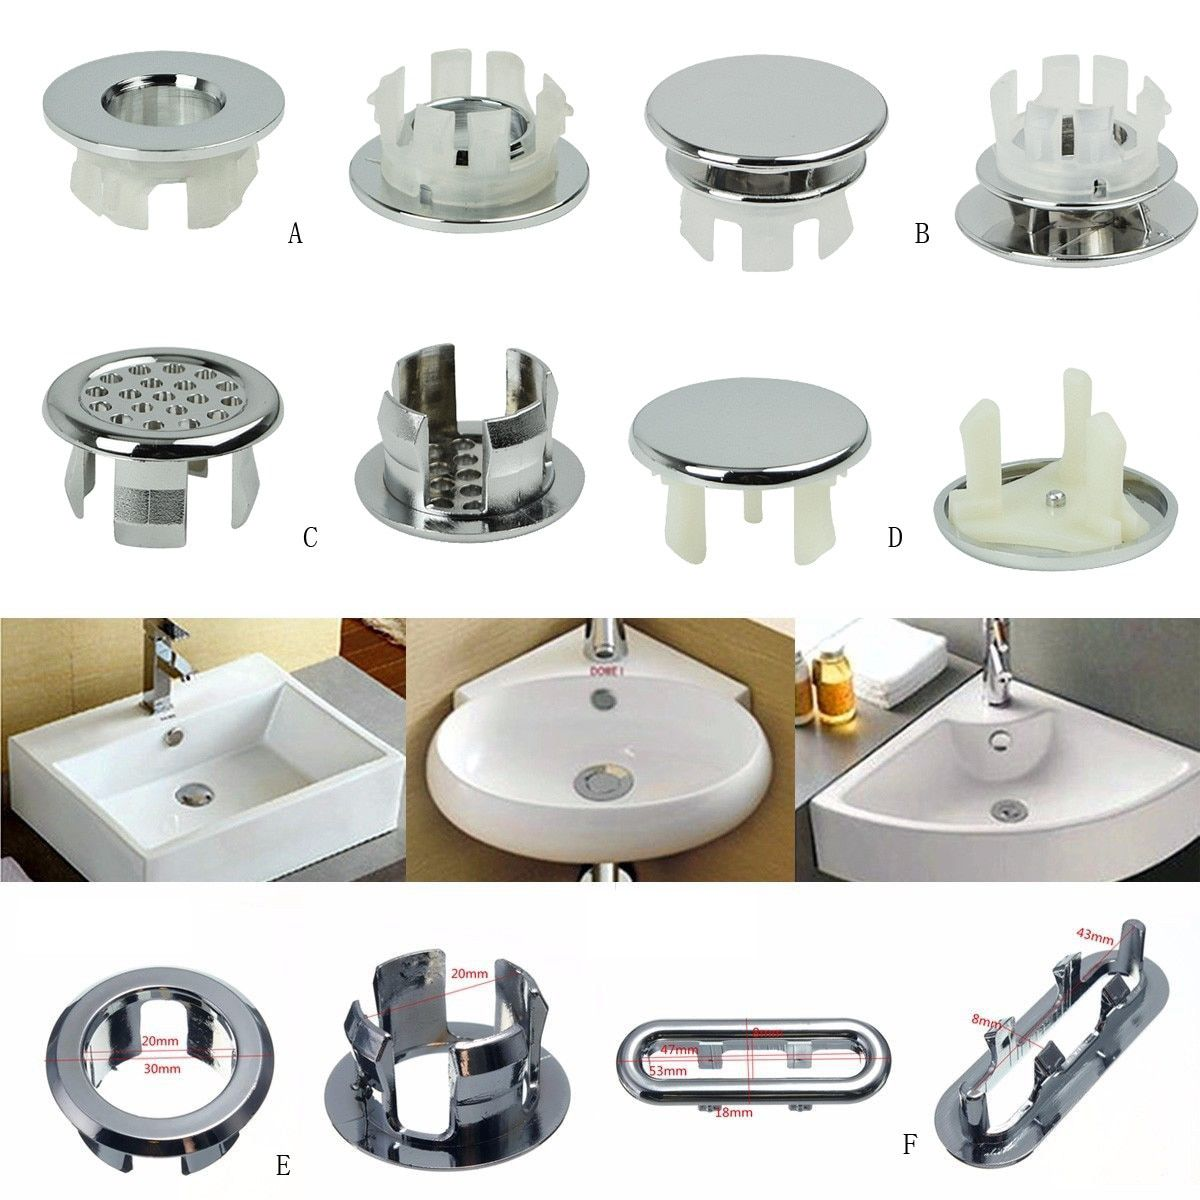 1pcs Sink Hole Round Overflow Cover Ceramic Pots Basin Sink Overflow Covers 55p Bathroom Accessories Sets Basin Sink Bathroom Cheap Bathroom Accessories